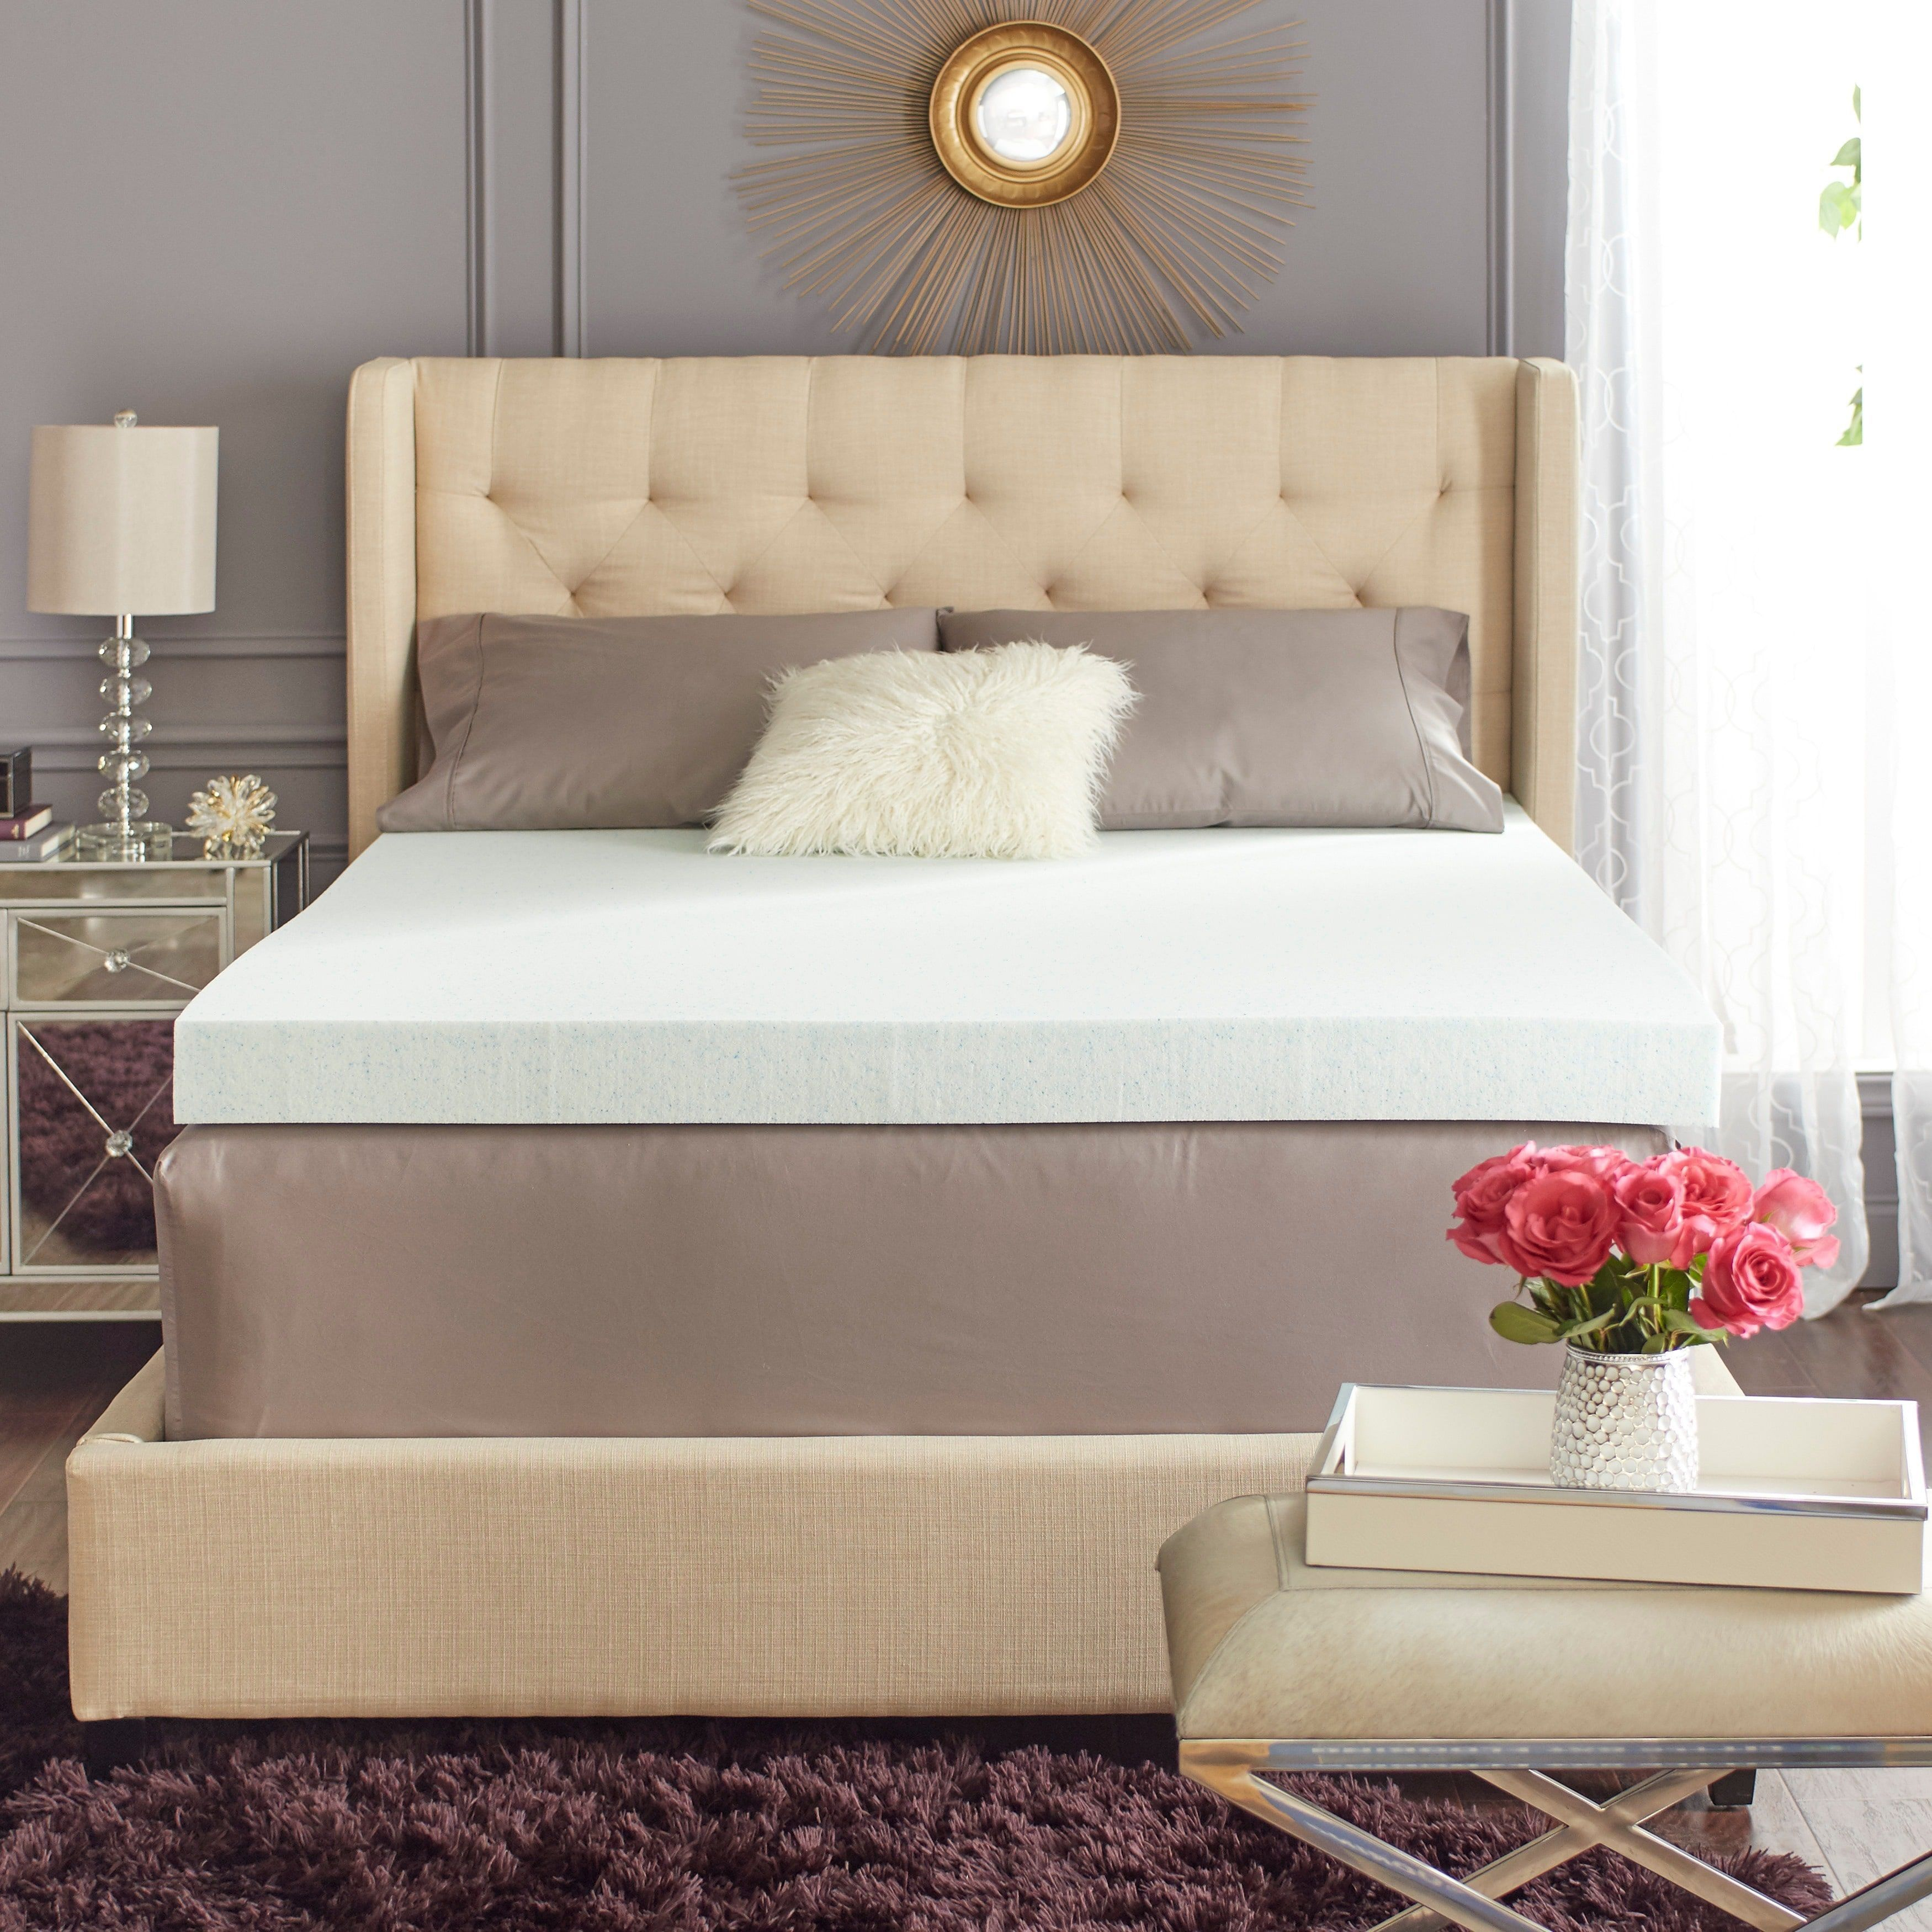 topper dreams memory foam with unbelievable comfort contour pics concept ultimate mattress of uncategorized inch imgid queen and hybrid styles serta